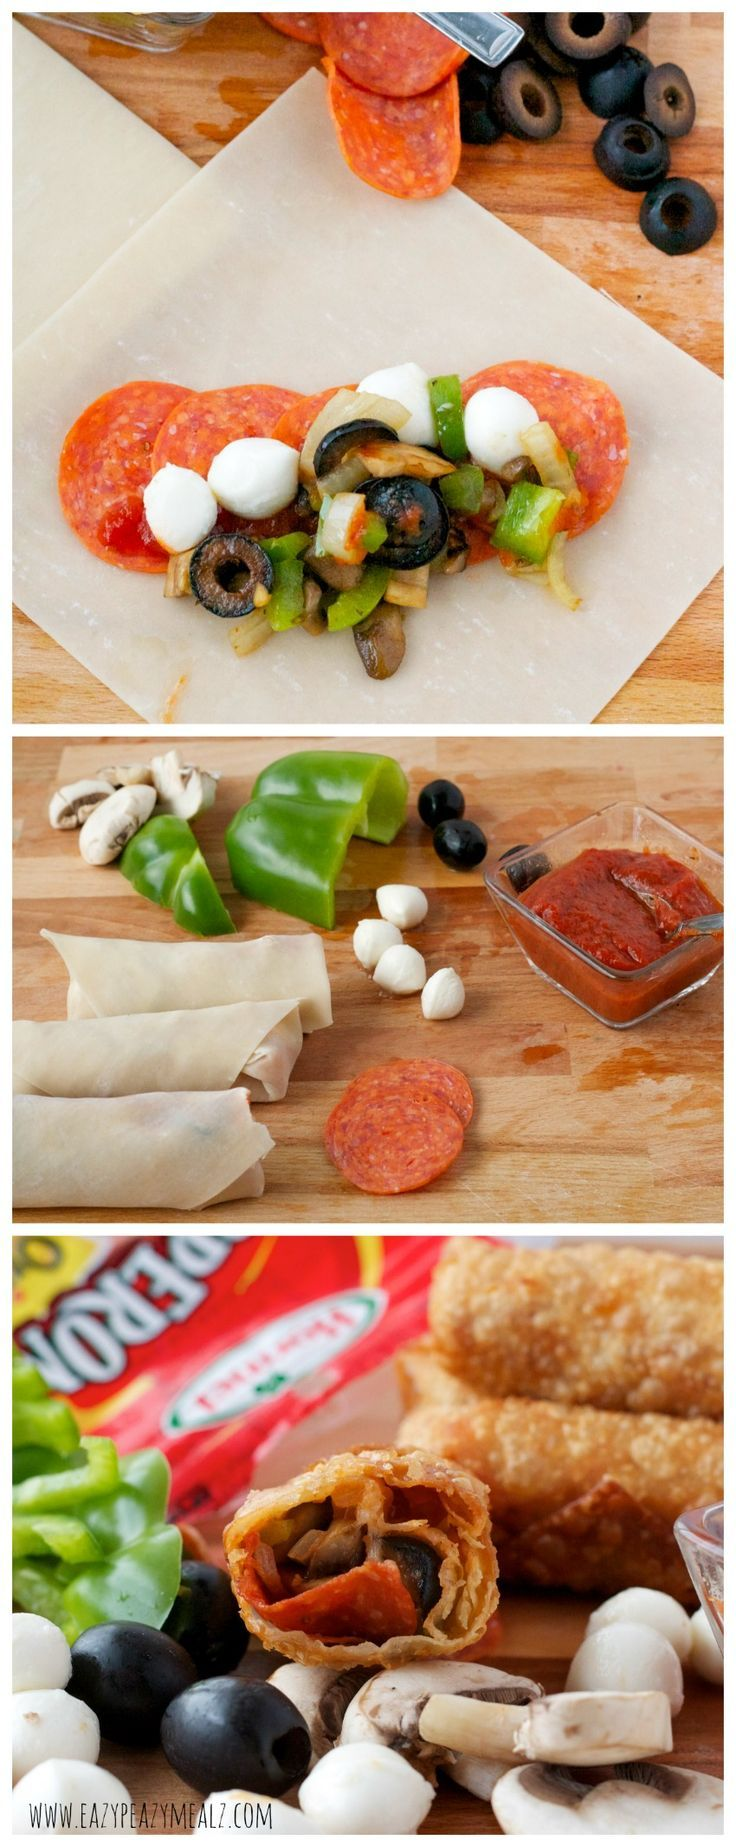 Hormel Pepperoni and Veggie Egg Rolls: A fun new twist on pizza that you can pack with veggies for a tasty, and good for you meal! #ad - Eazy Peazy Mealz